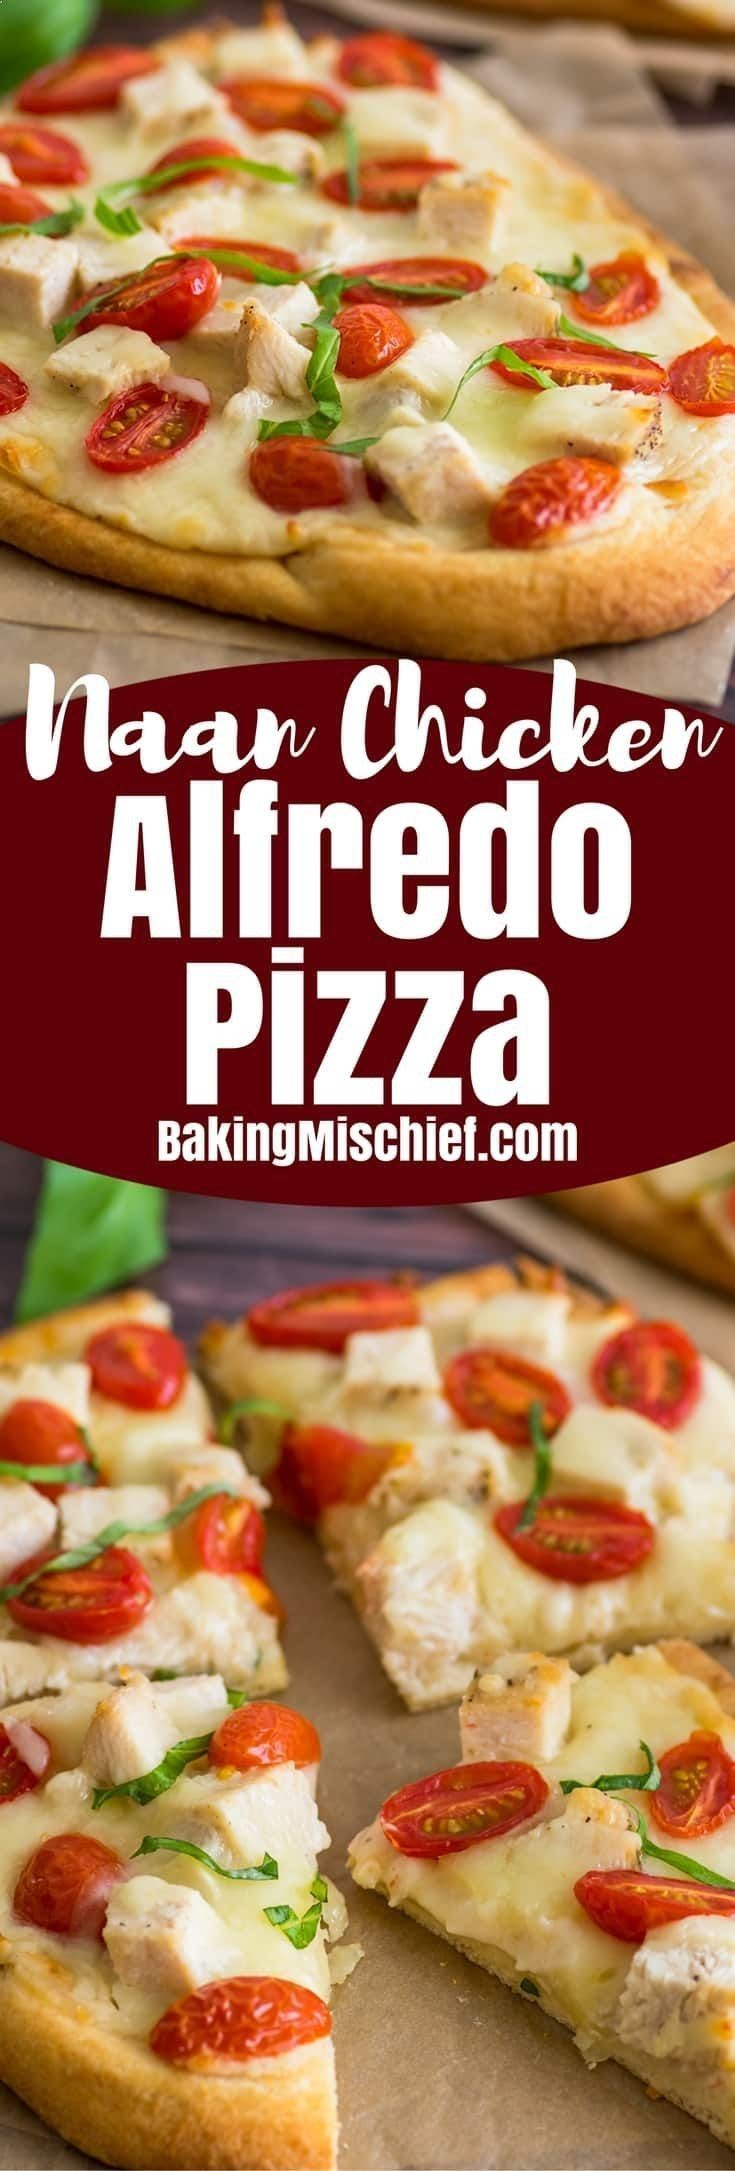 This Naan Chicken Alfredo Pizza issuper easy, so good, and just a bit classier than your usual delivery pizza. | Homemade Pizza | Recipe for Two | Dinner for Two |